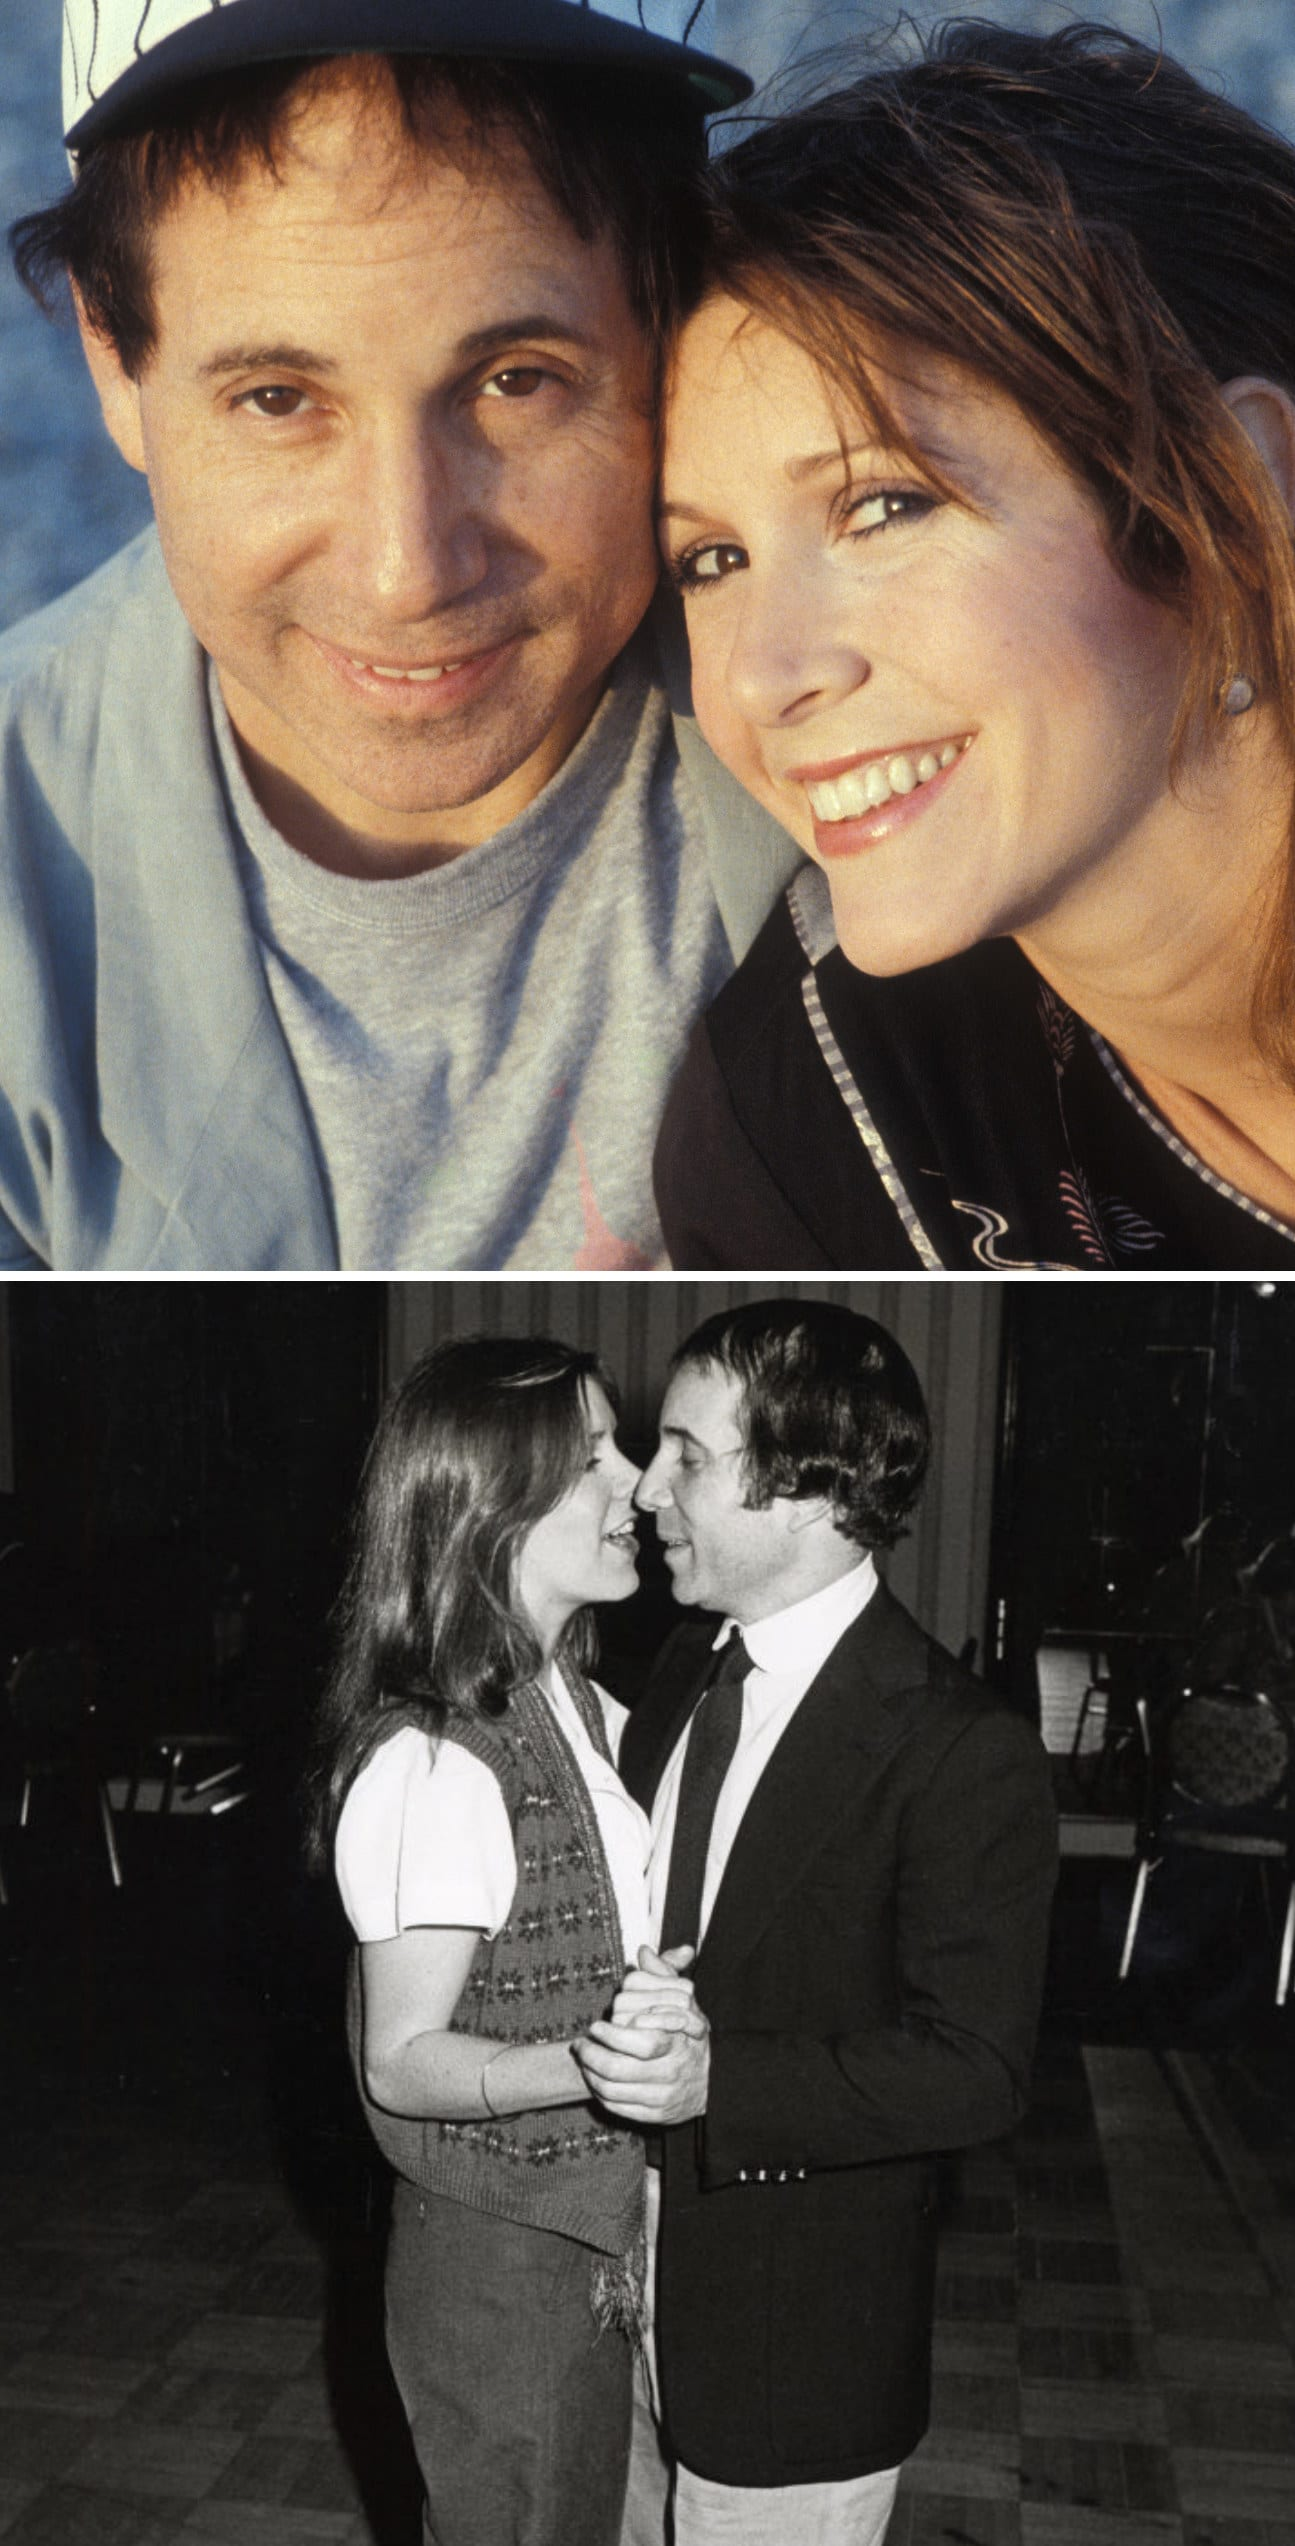 Fisher and Simon posing for a portrait on the beach in 1983; Fisher and Simon dancing at a movie premiere party in 1979